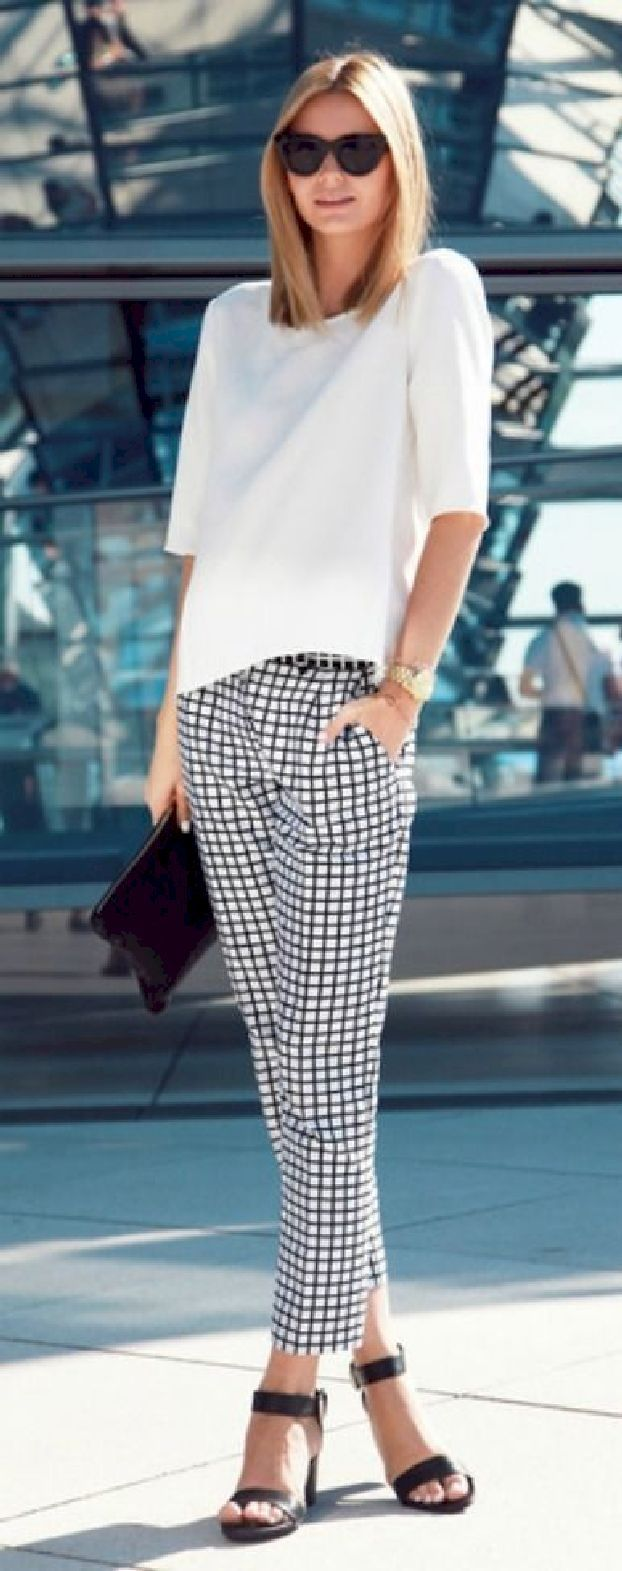 61023b7c3cc6 Stunning 60 Casual Summer Work Outfits Ideas 2017 from https    www.fashionetter